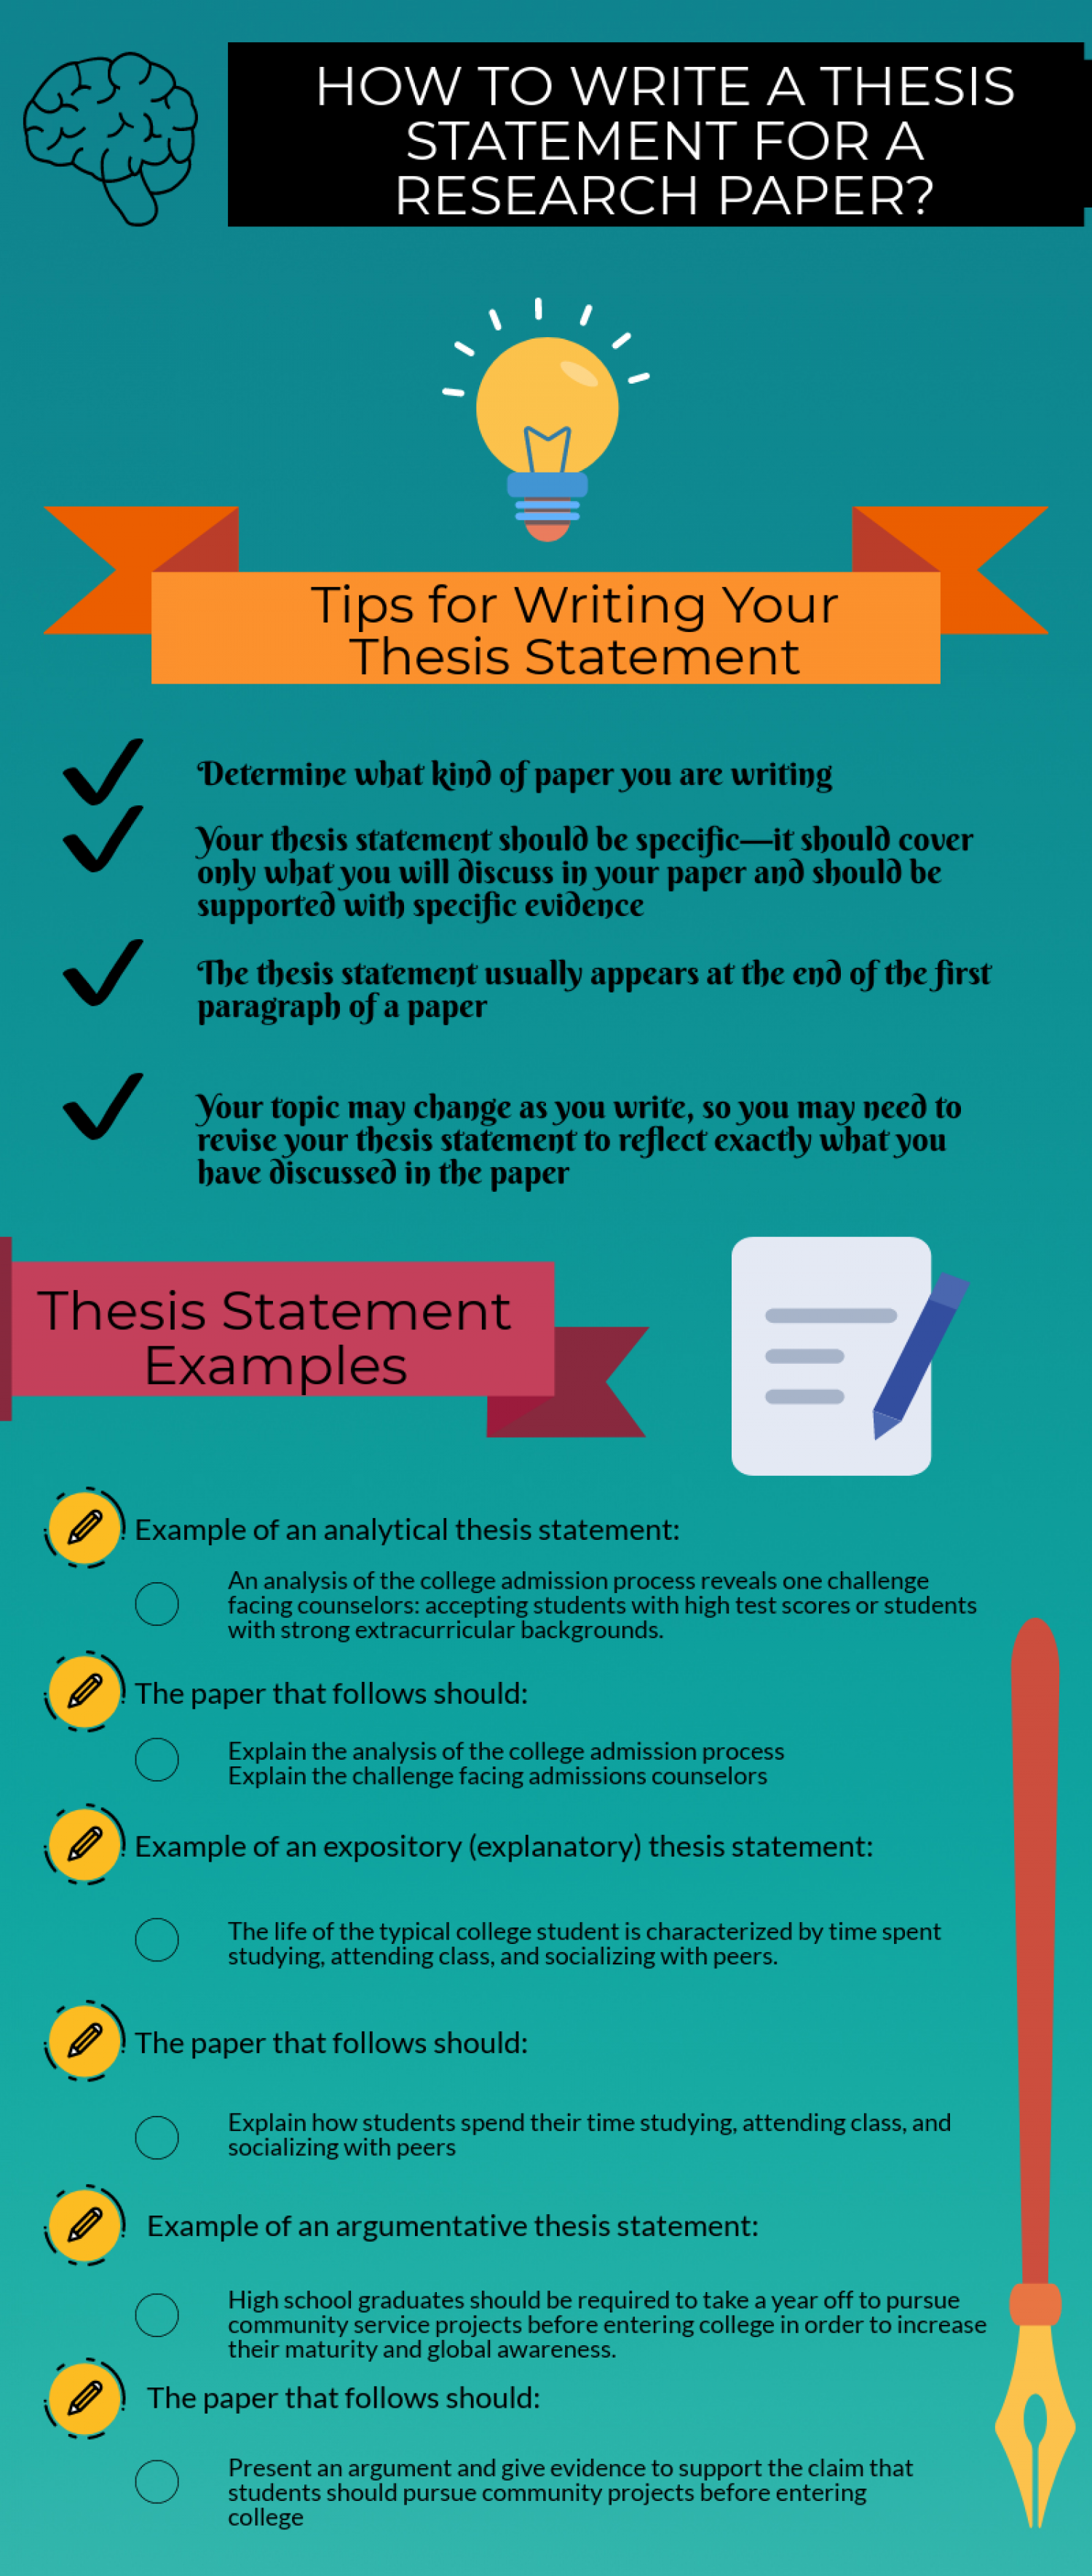 How To Write A Thesis Statement For A Research Paper? Infographic